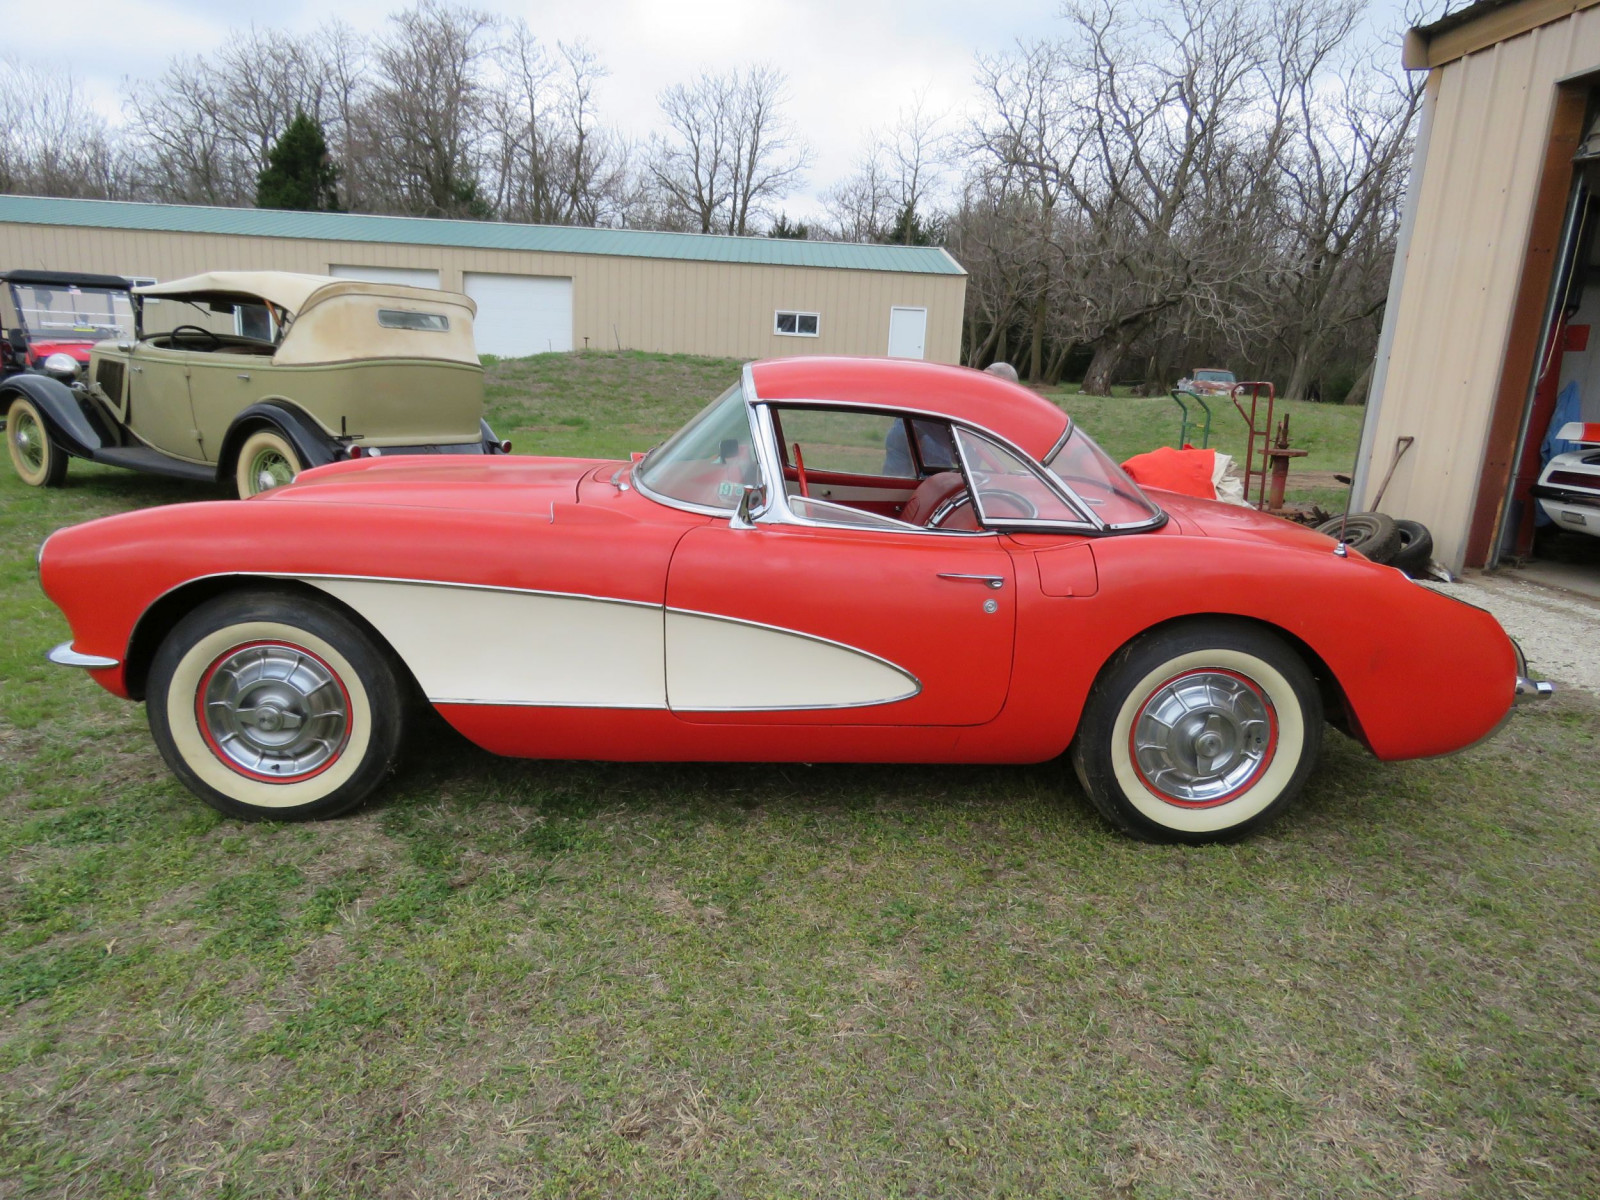 1956 CHEVROLET COUPE CORVETTE - Image 4